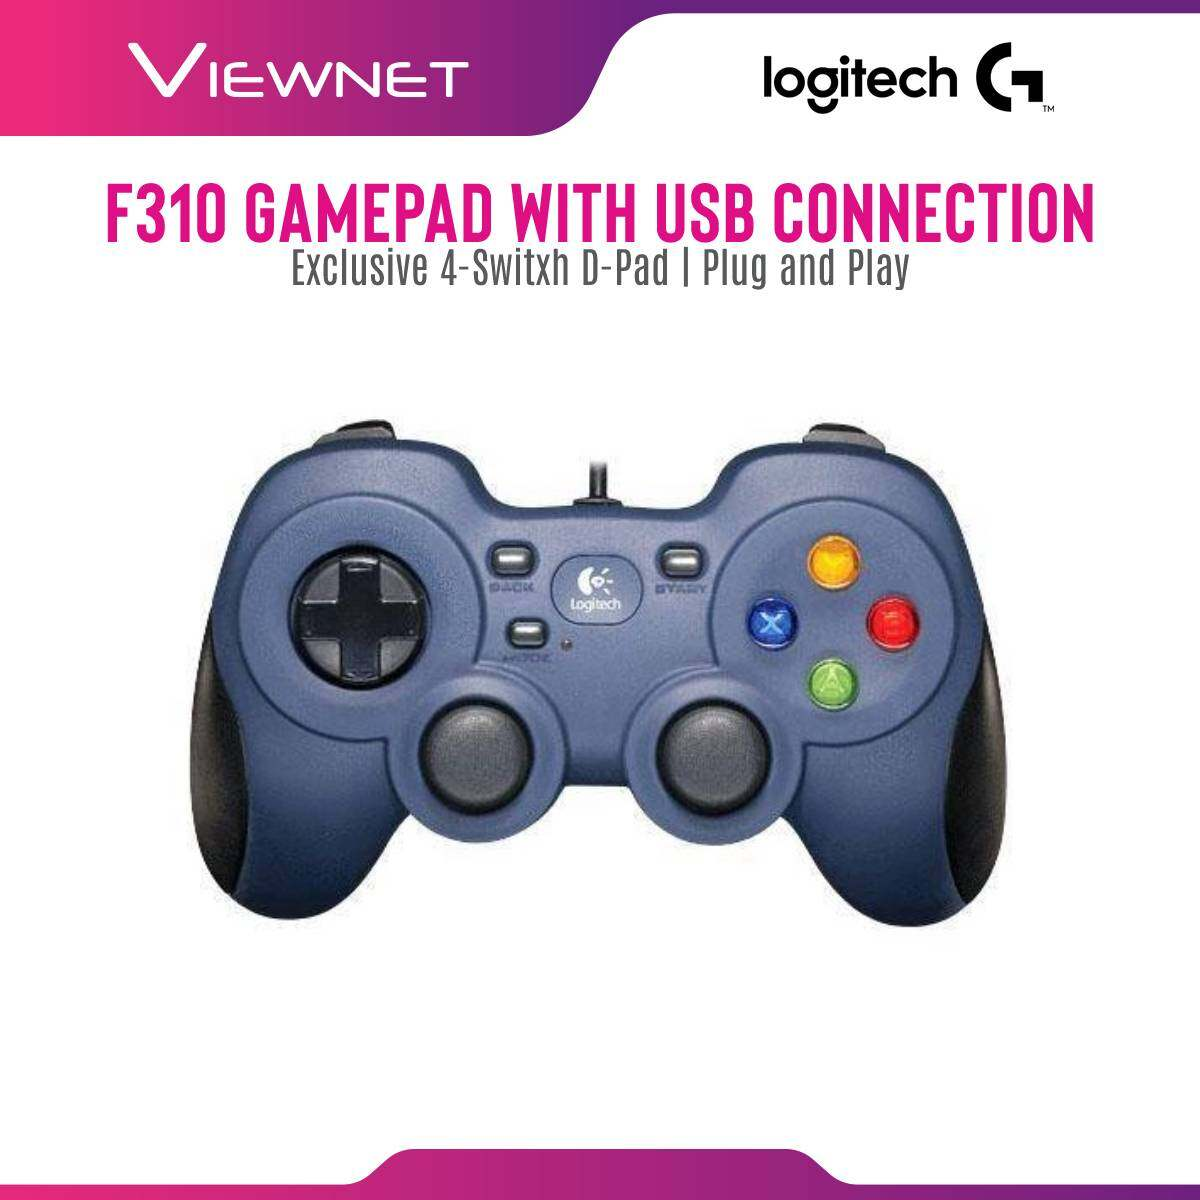 Logitech F310 Gamepad with USB Connection, Exclusive 4-Switxh D-Pad, Plug and Play(940-000112)